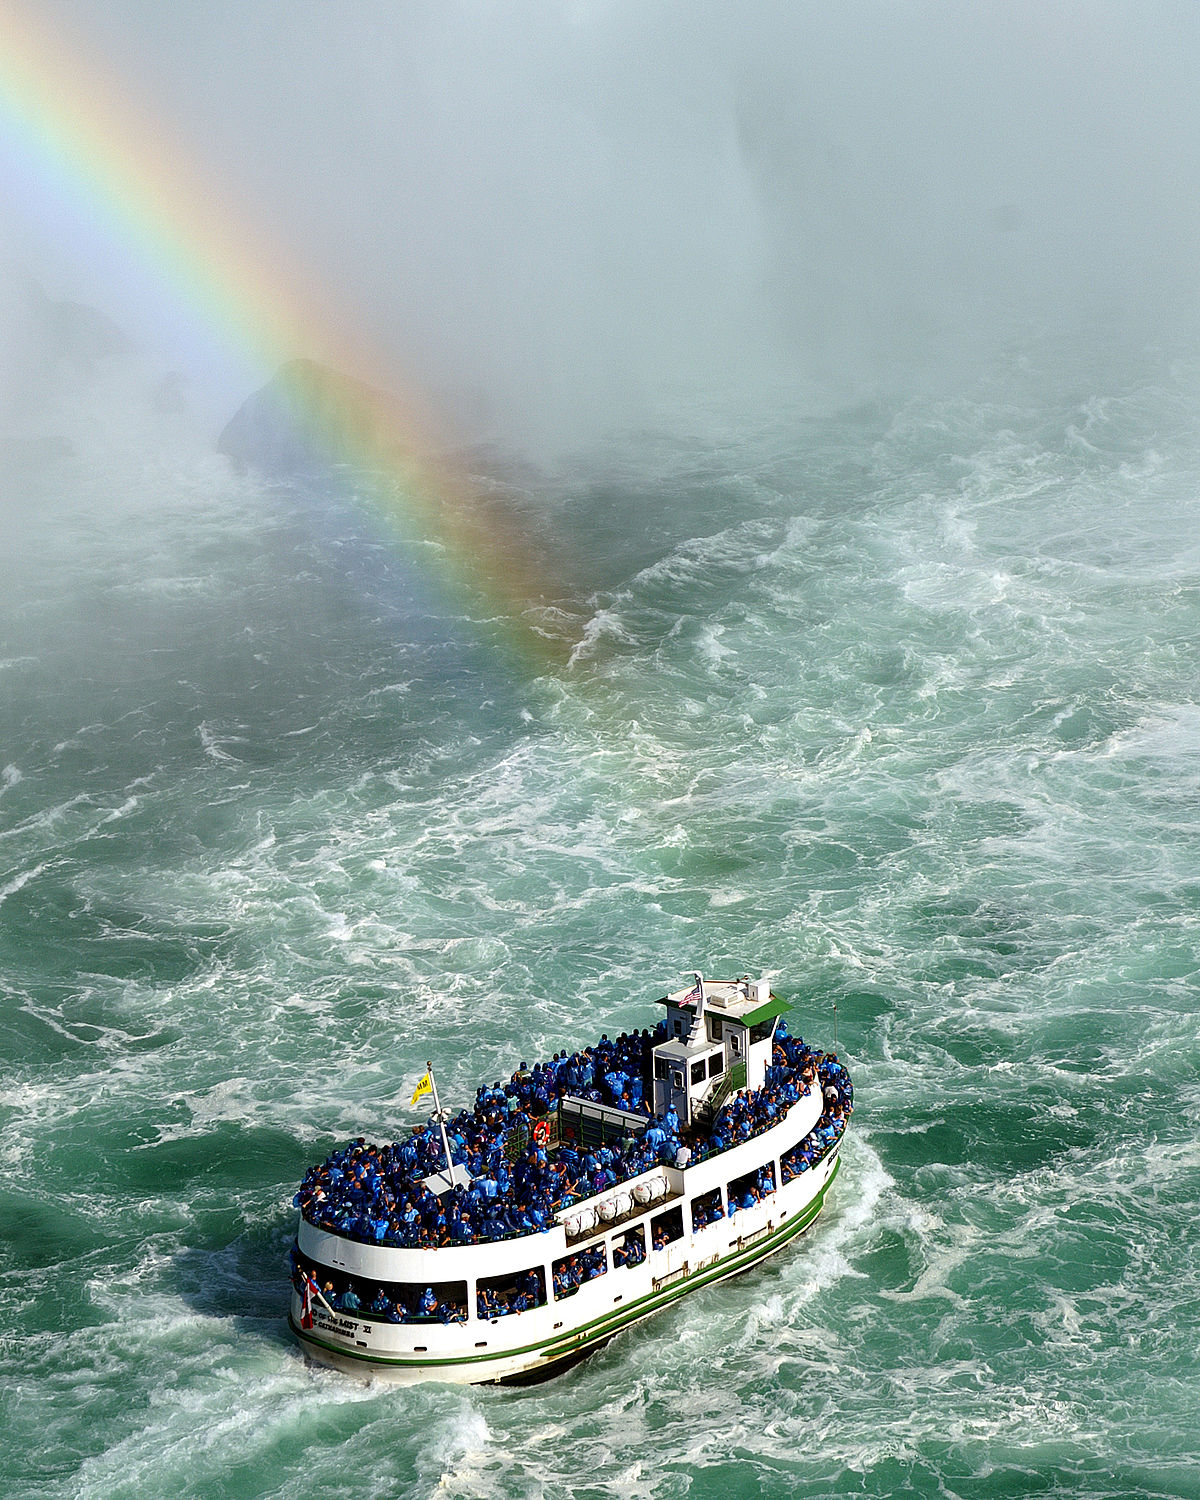 Maid of the Mist - Wikipedia